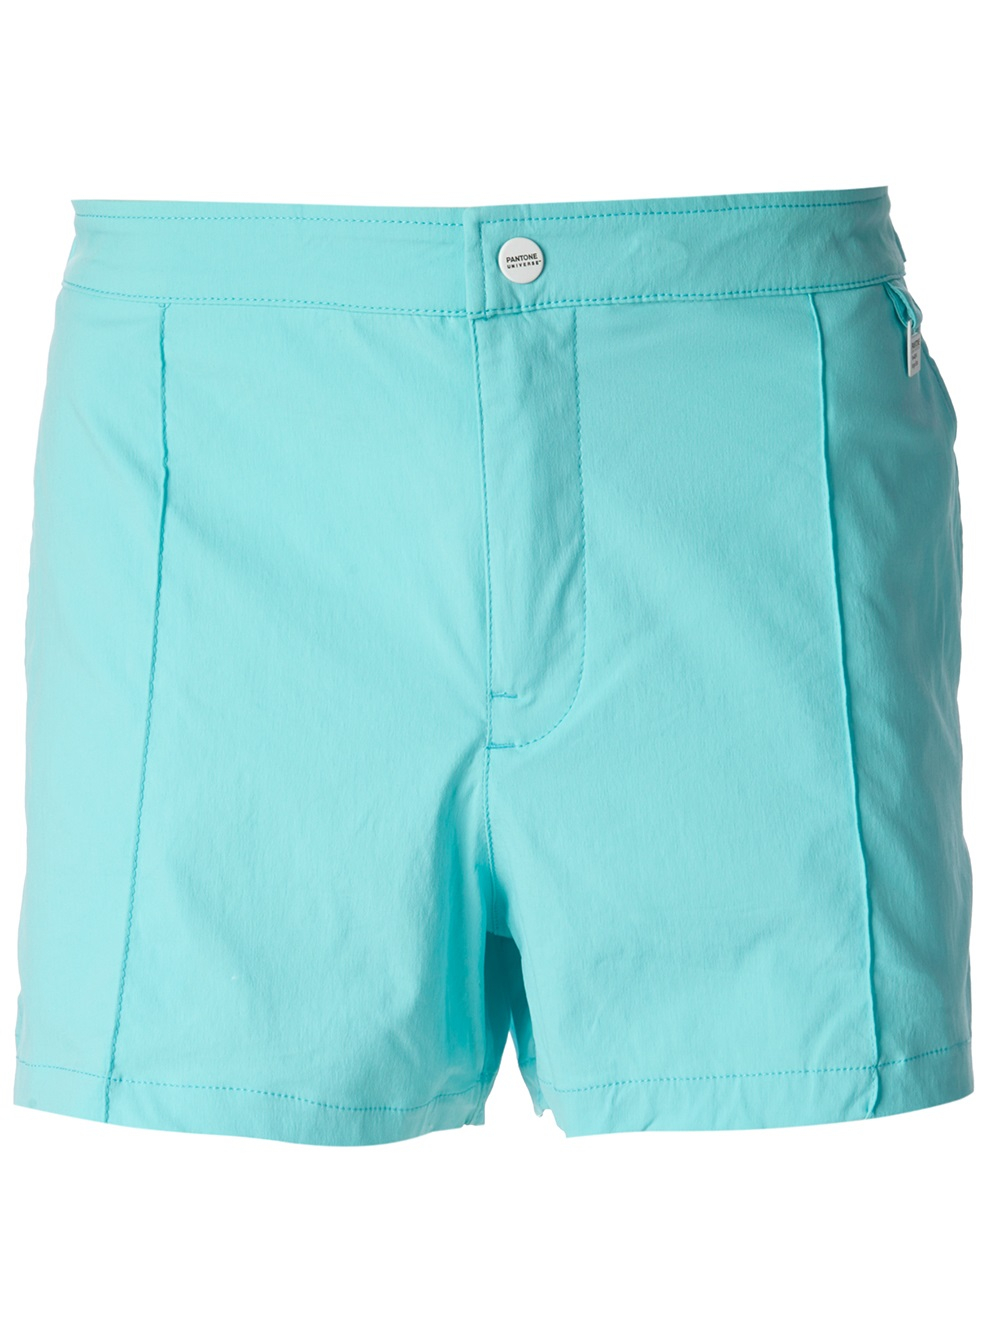 0dbf5005d09e3 Lyst - Pantone Classic Swimming Shorts in Blue for Men